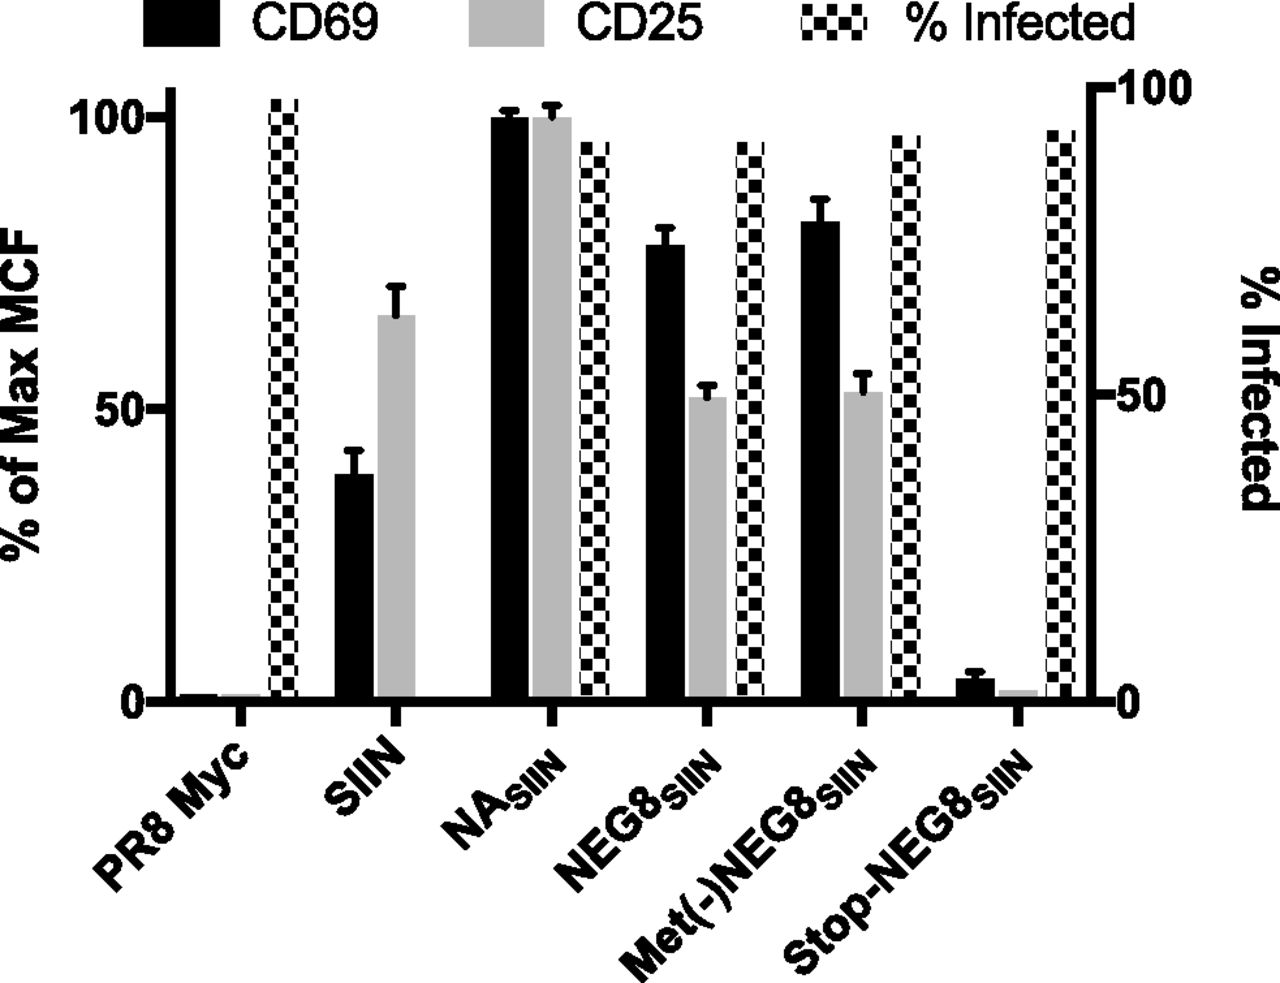 Influenza A Virus Negative Strand RNA Is Translated for CD8+